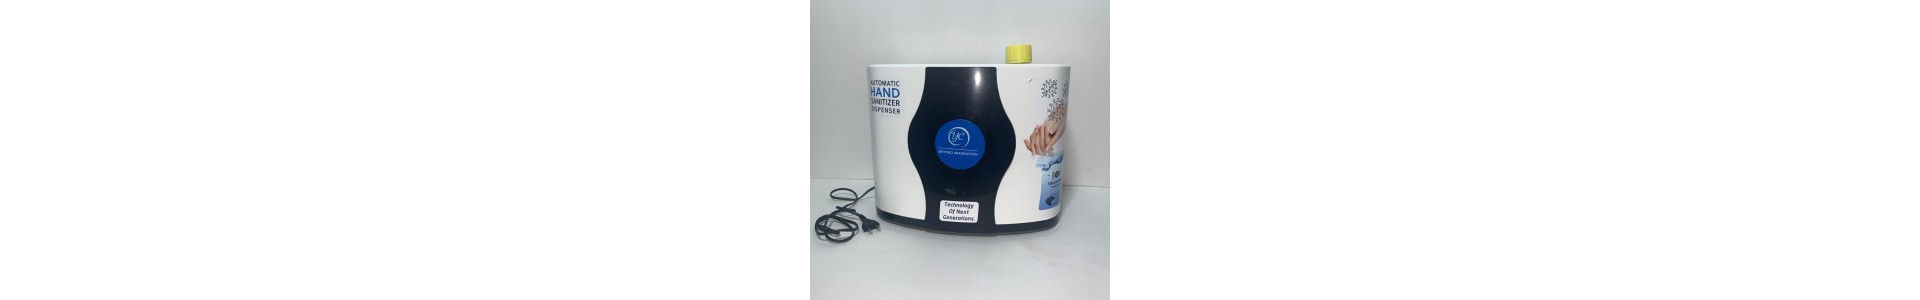 YC Hand Sanitizer | 2 Year Replacement Warranty  | Low Price